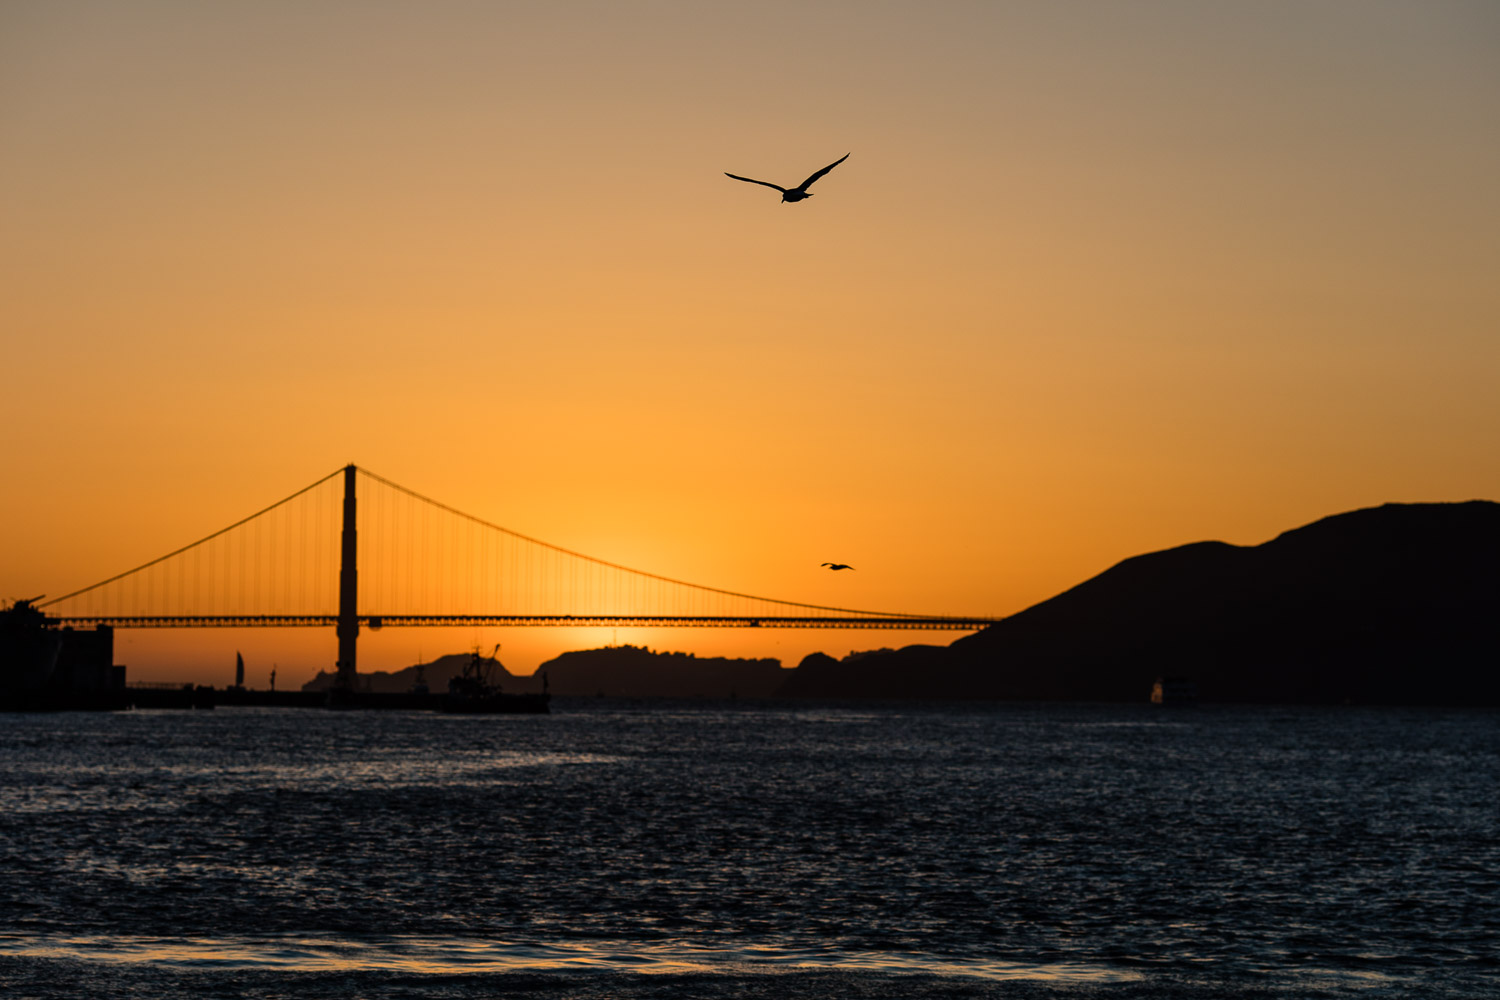 San Francisco – Cable Cars & Bridges